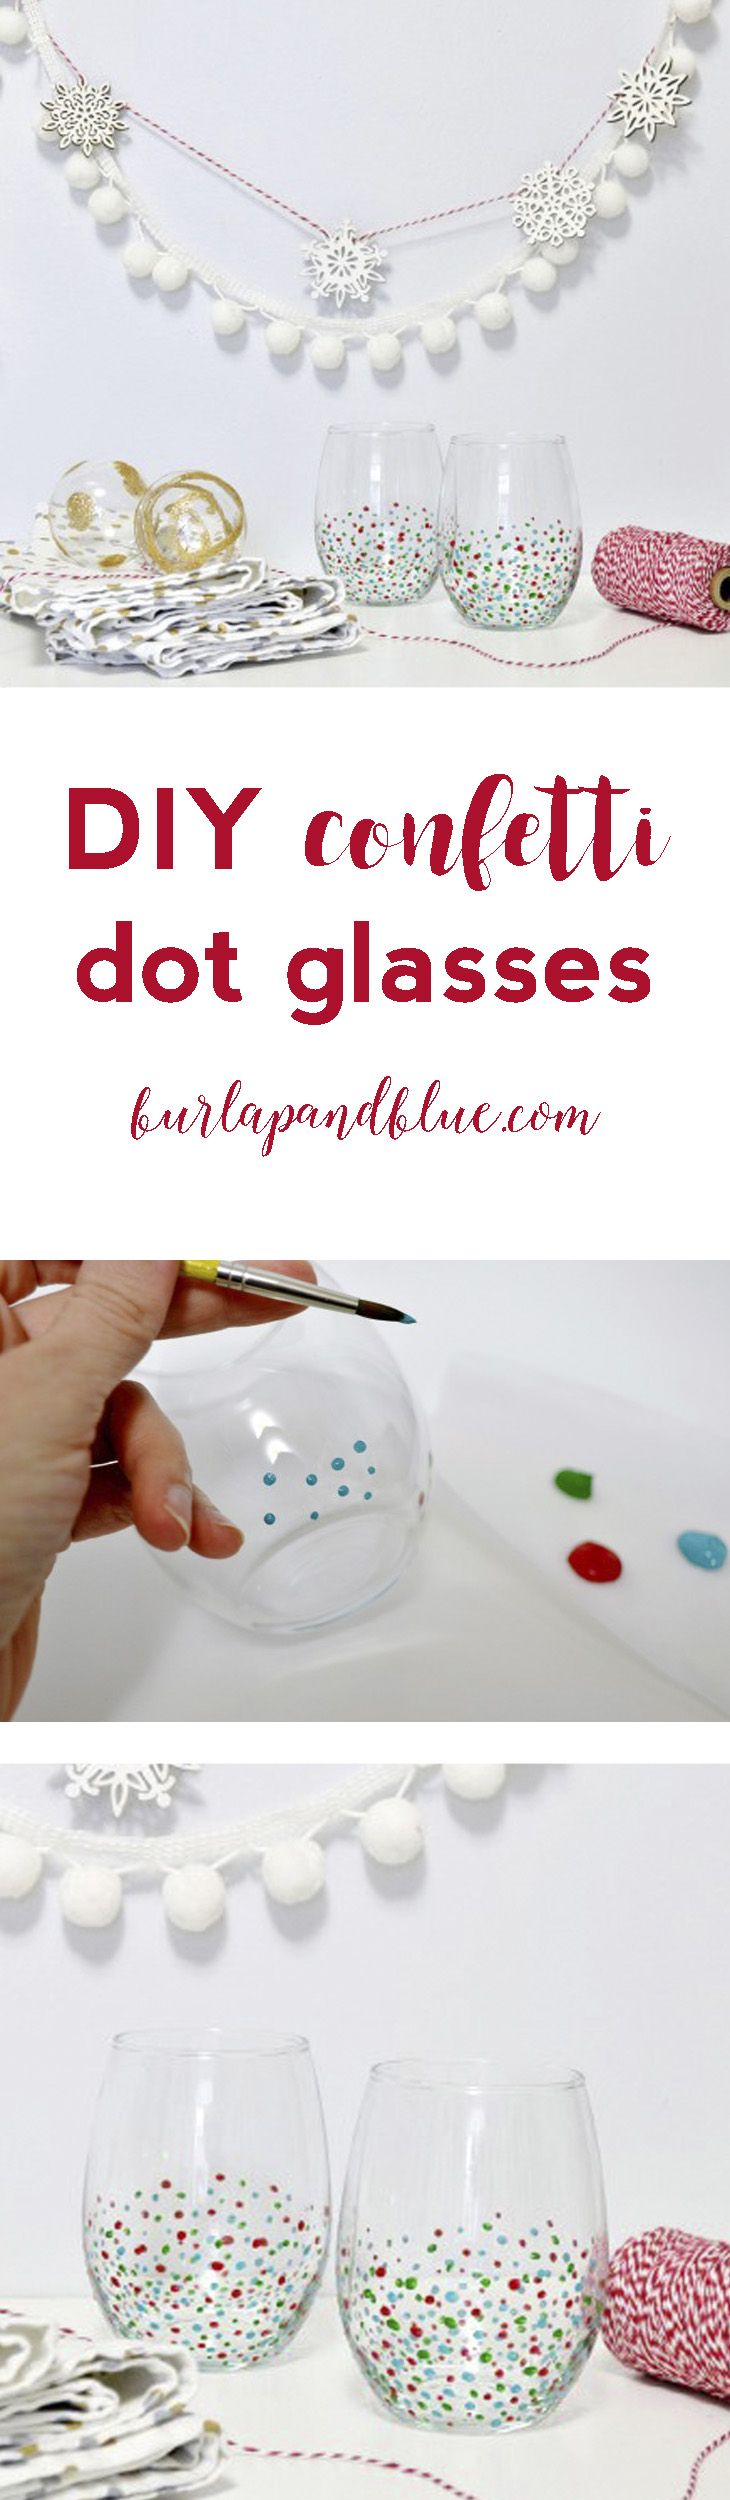 easy diy confetti dot wine glasses! perfect for holiday or wedding gifts.